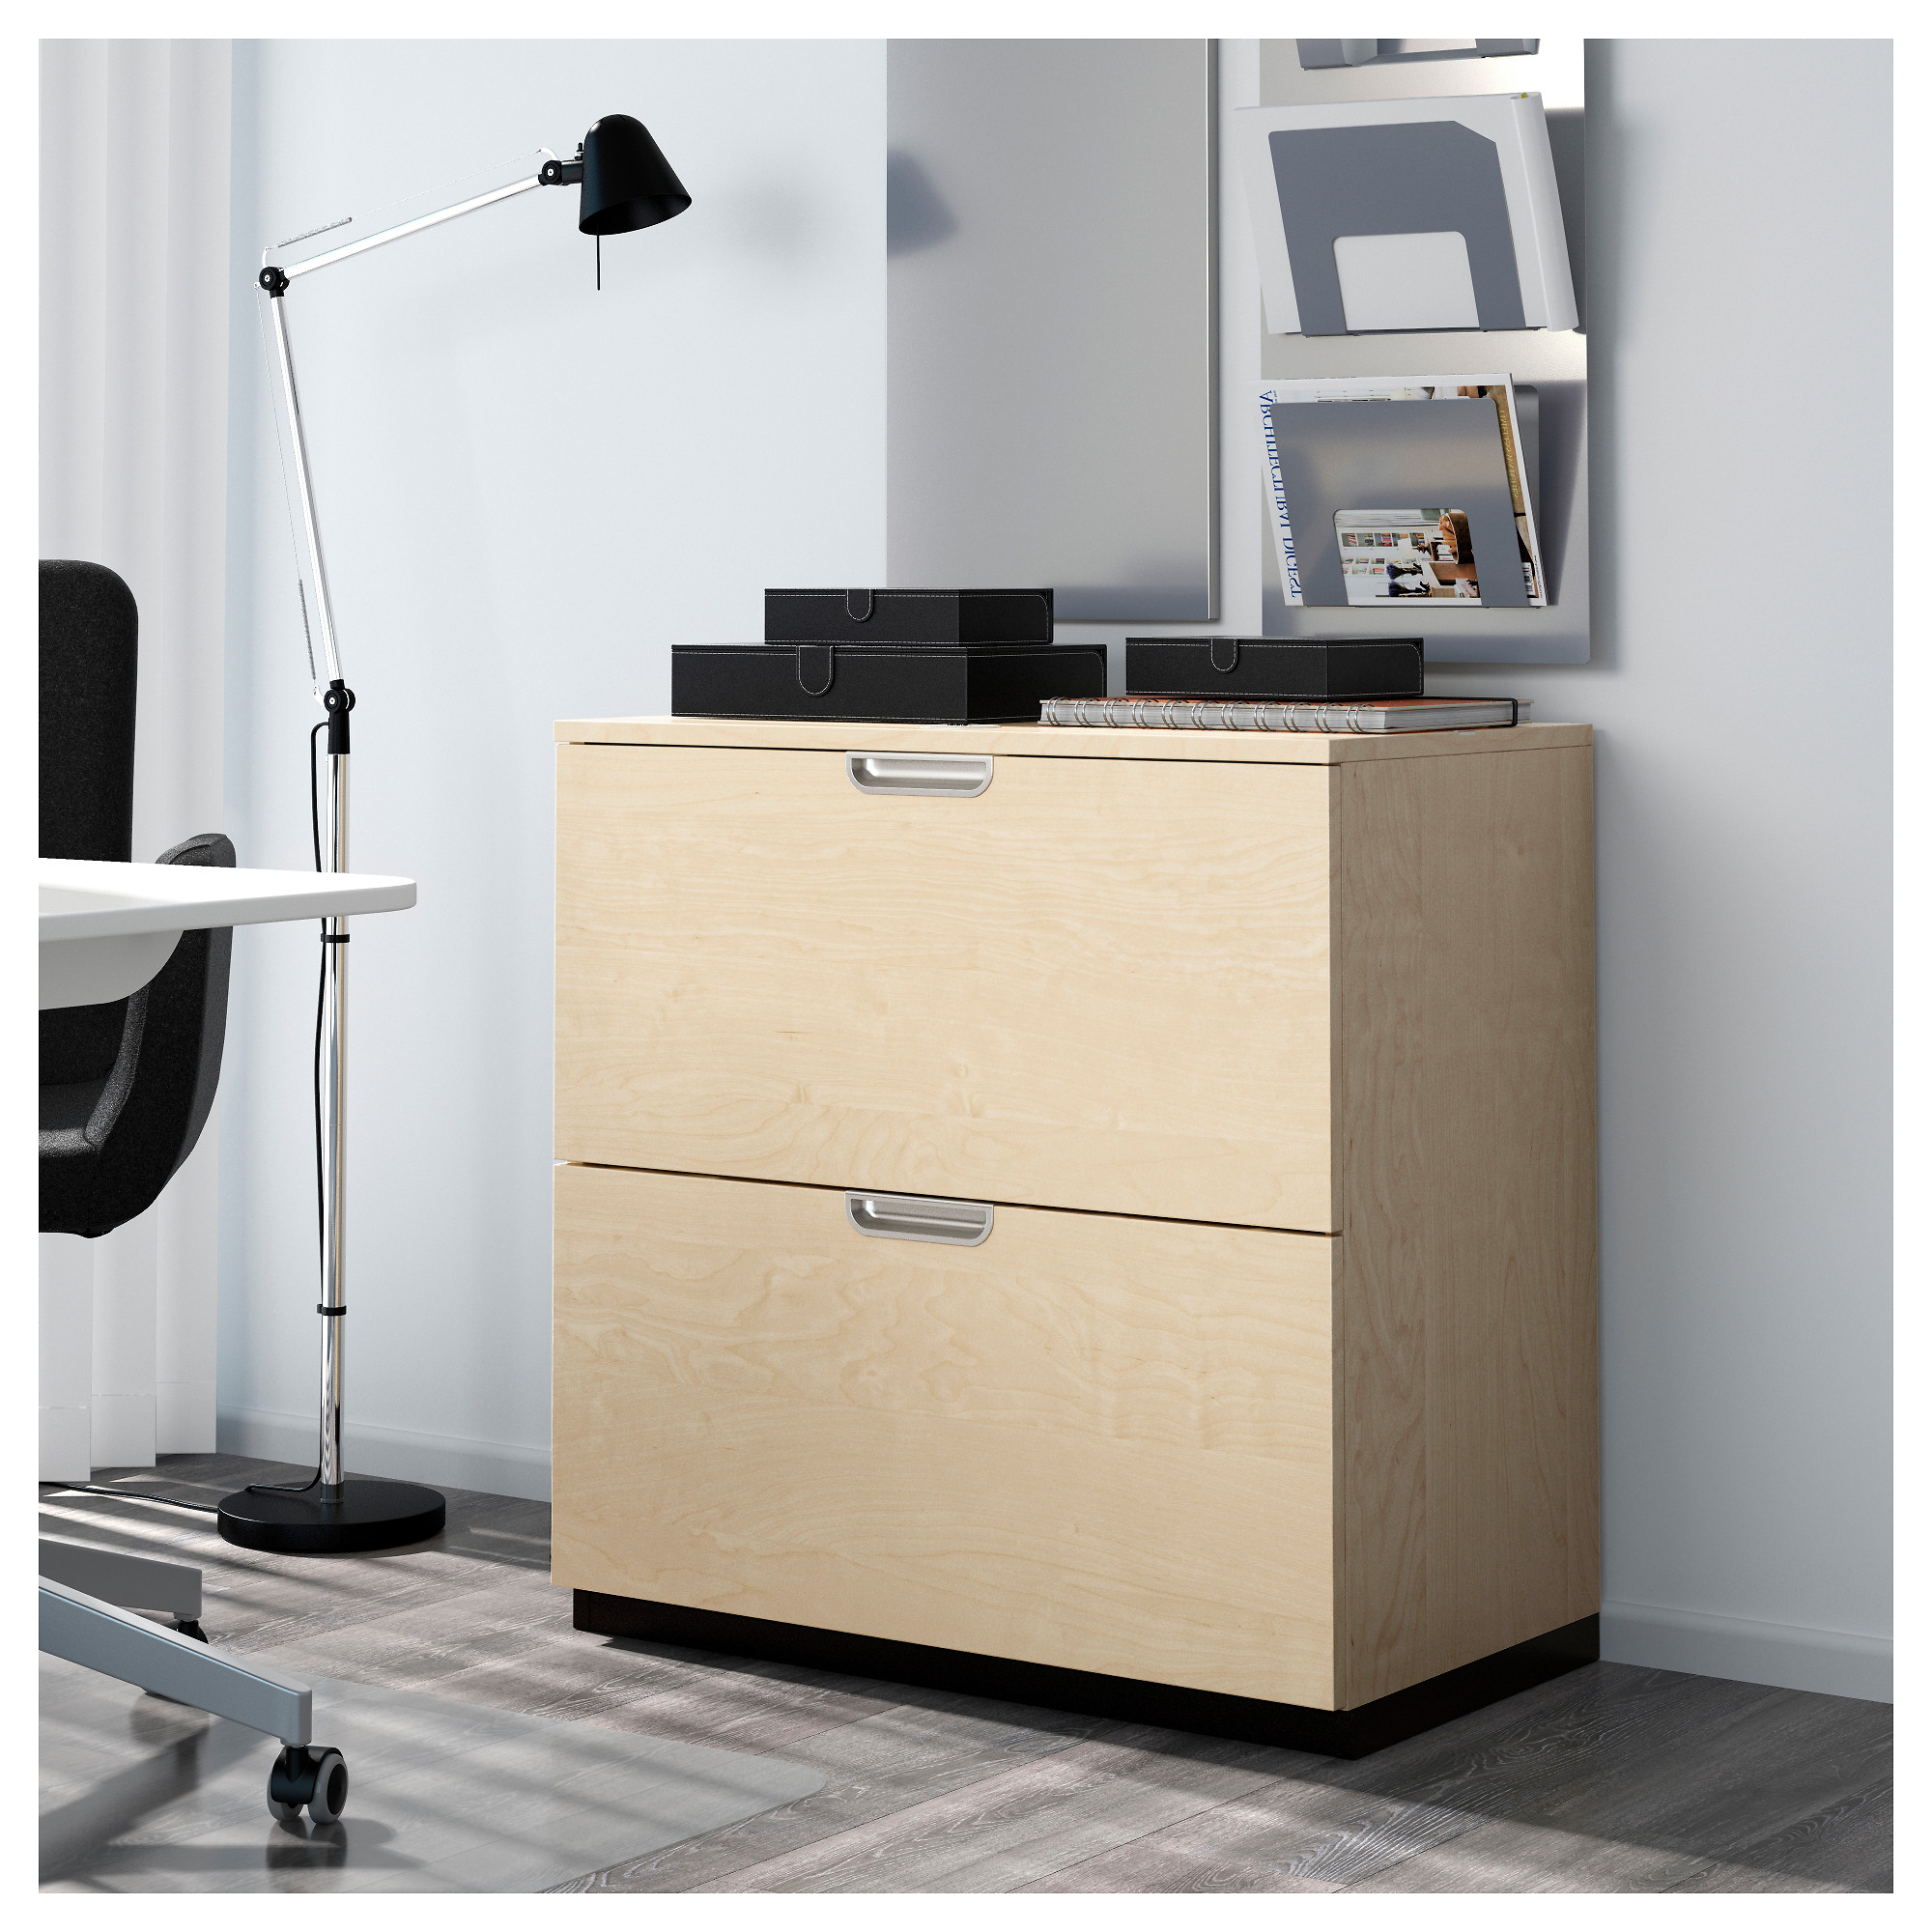 Ikea Galant galant drawer unit drop file storage birch veneer ikea